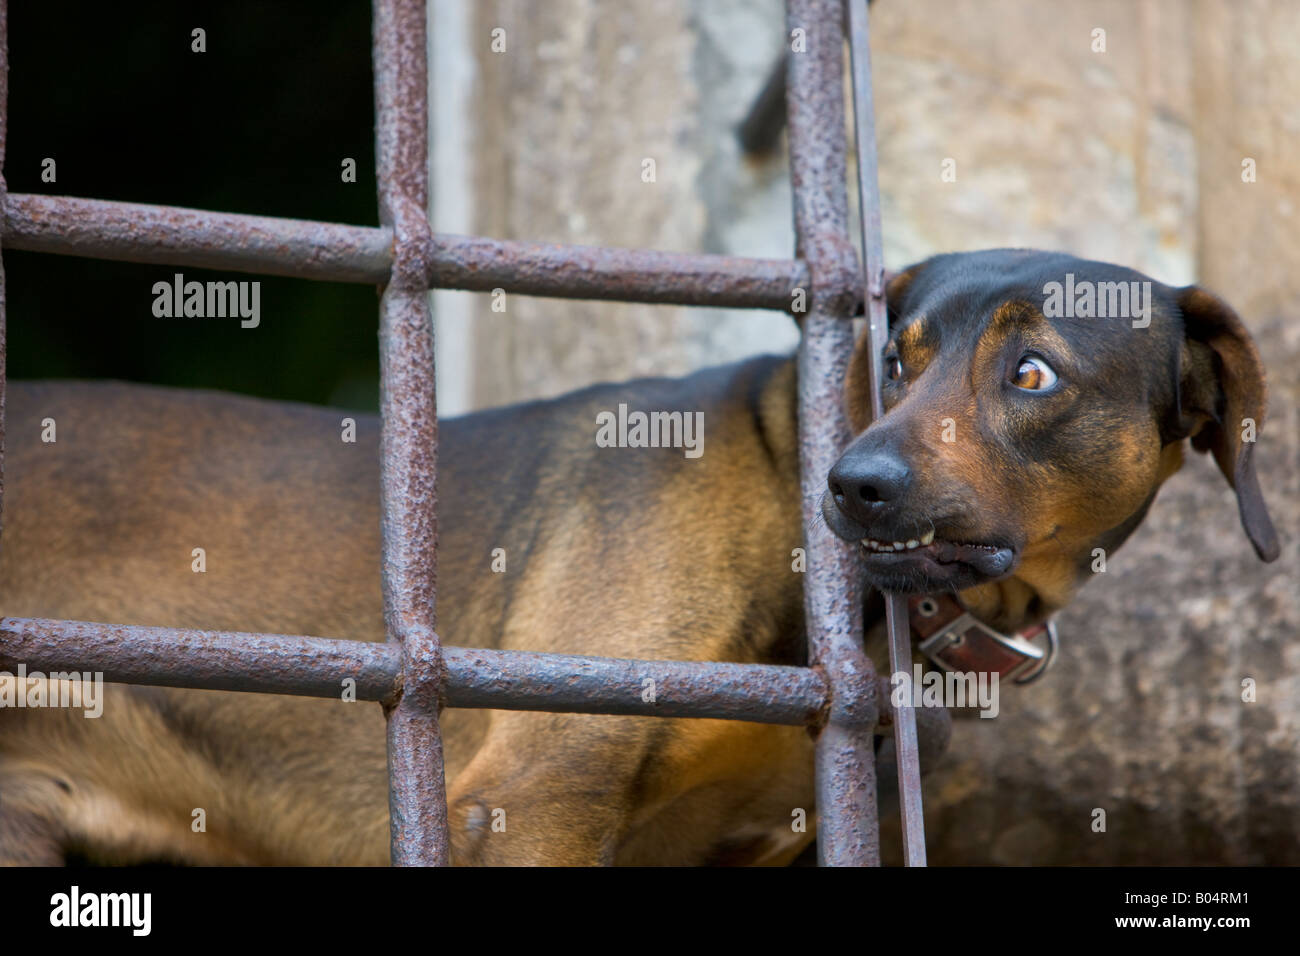 A dog, Canis familiaris, at a barred window in Piazza San Martino in the City of Lucca, Province of Lucca, Region - Stock Image